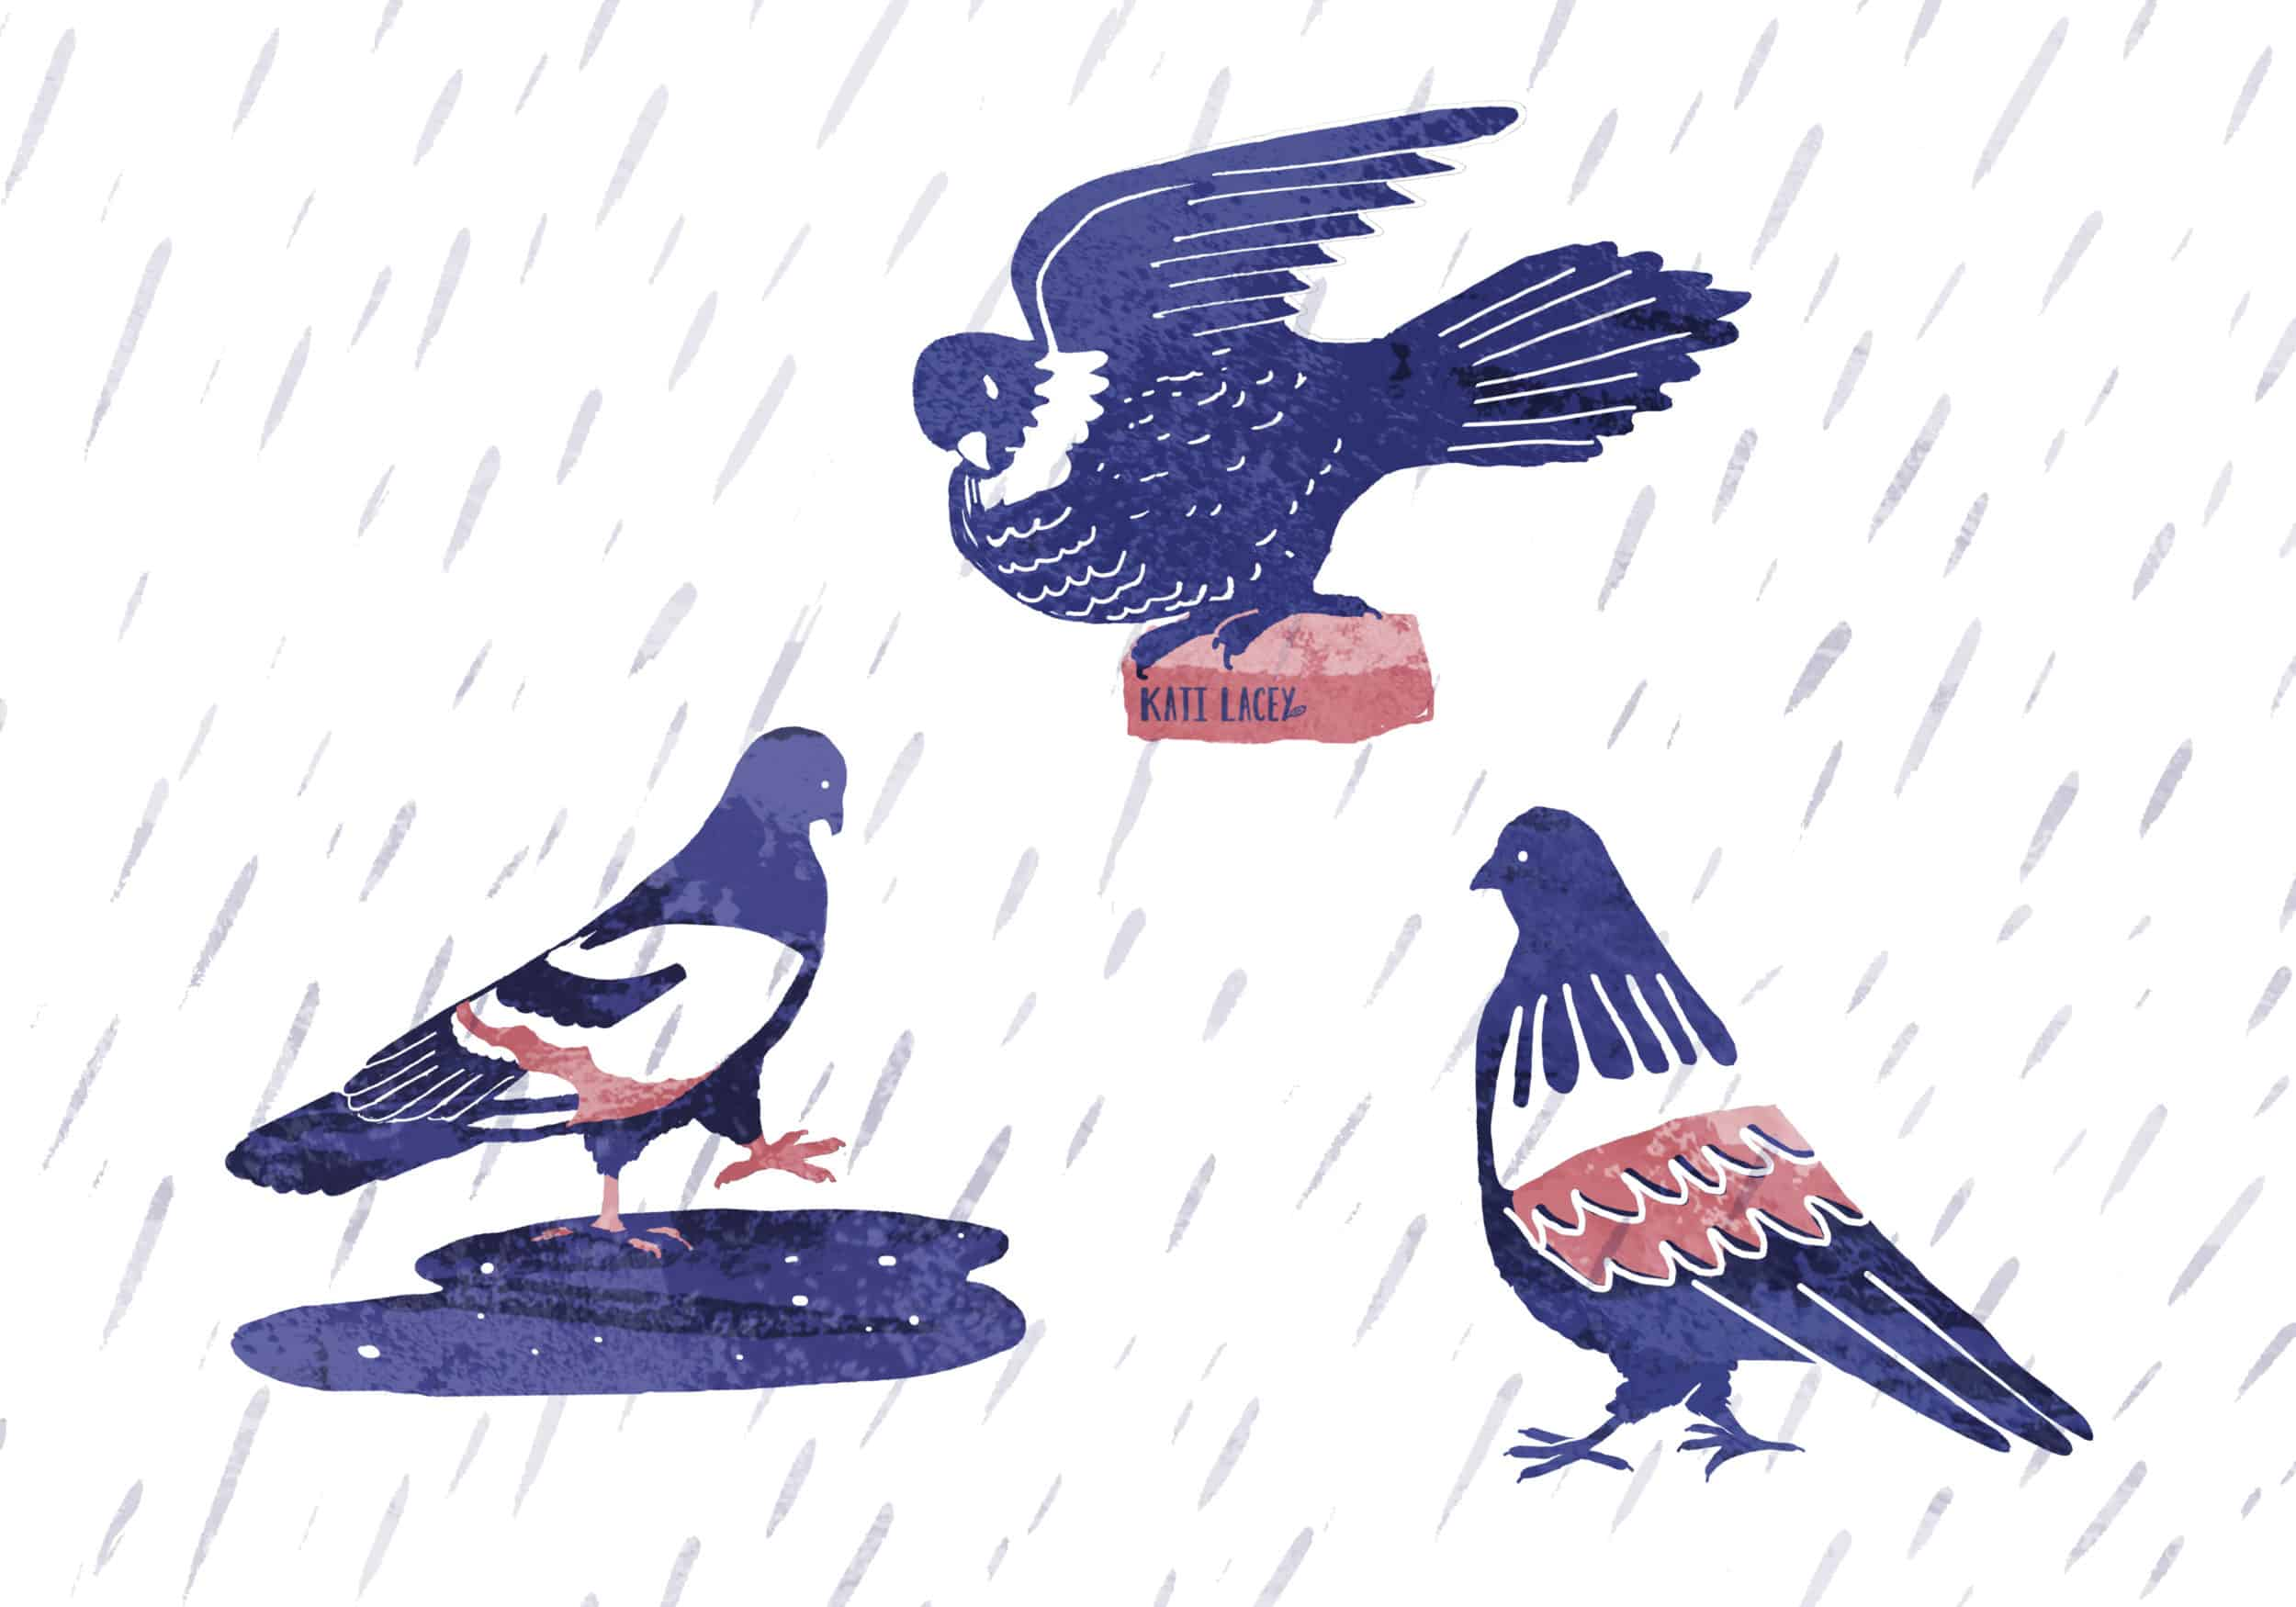 pigeons bathing showering in the rain washing armpits illustration blue and pink katilacey freelance illustrator moments of joy